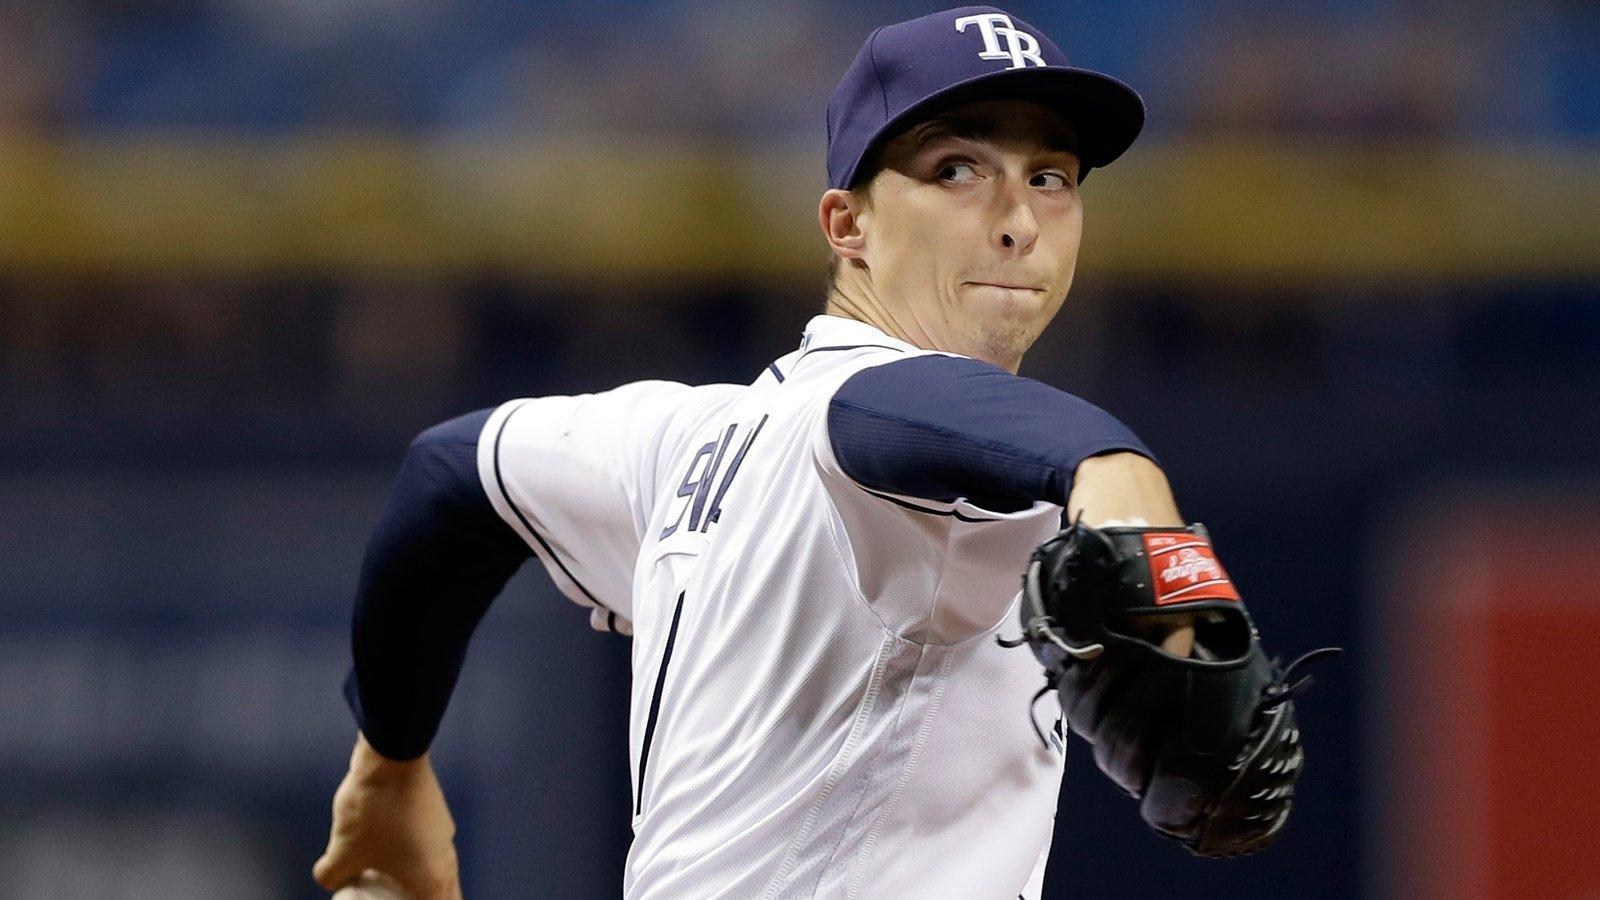 LBWMF: Blake Snell, Rays fall to the Blue Jays, 5